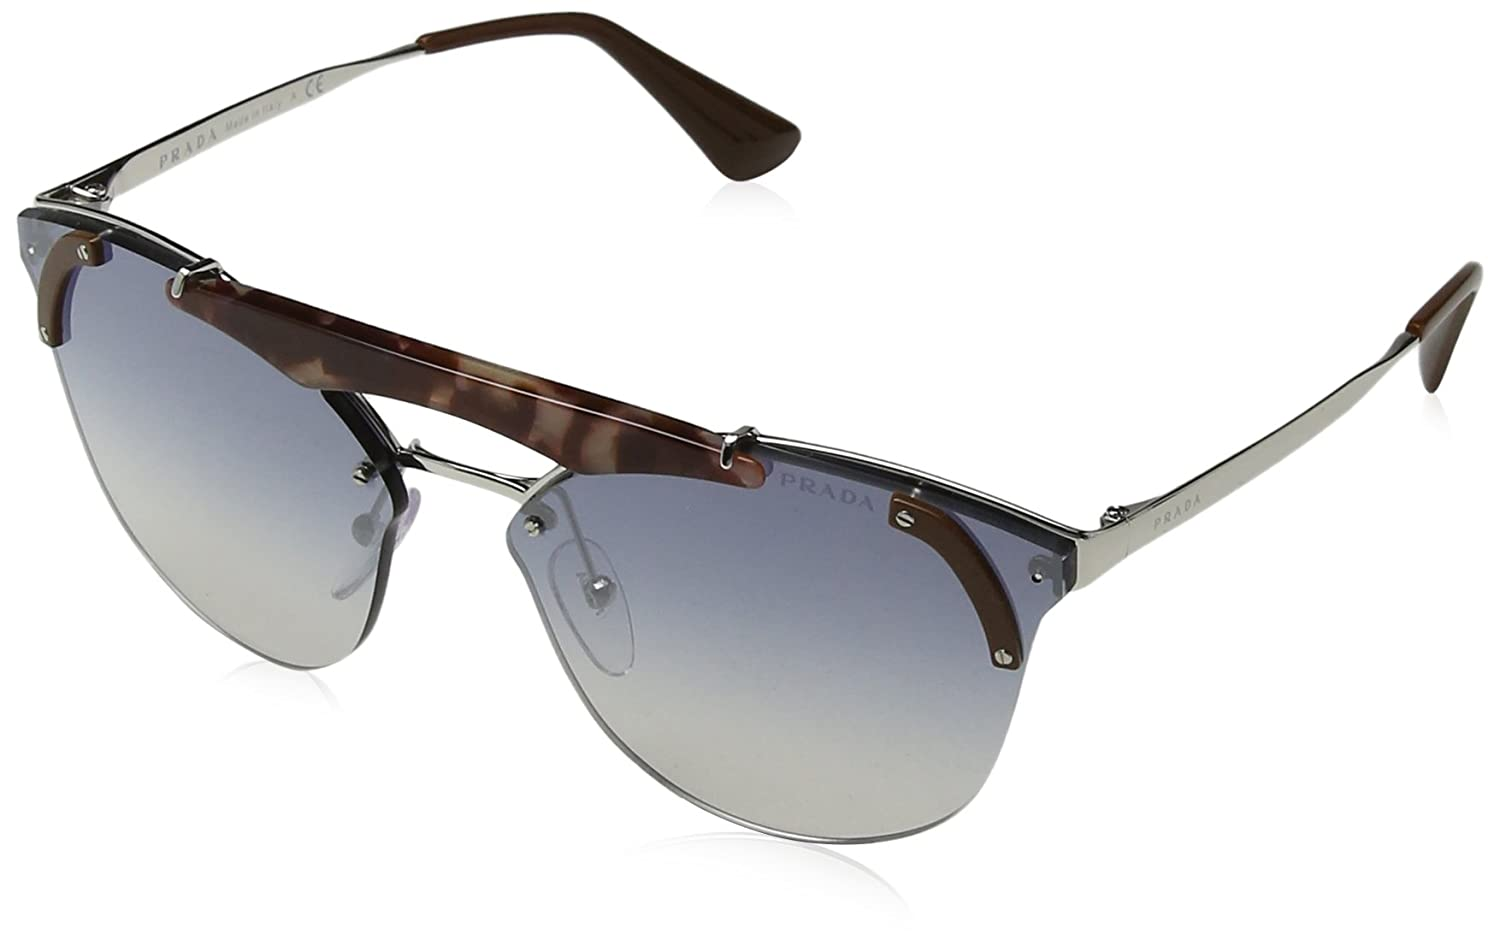 Prada 0PR53US C135R0 42, Gafas de Sol para Mujer, Marrón Pink Havana/Brown/Light Blue Silver